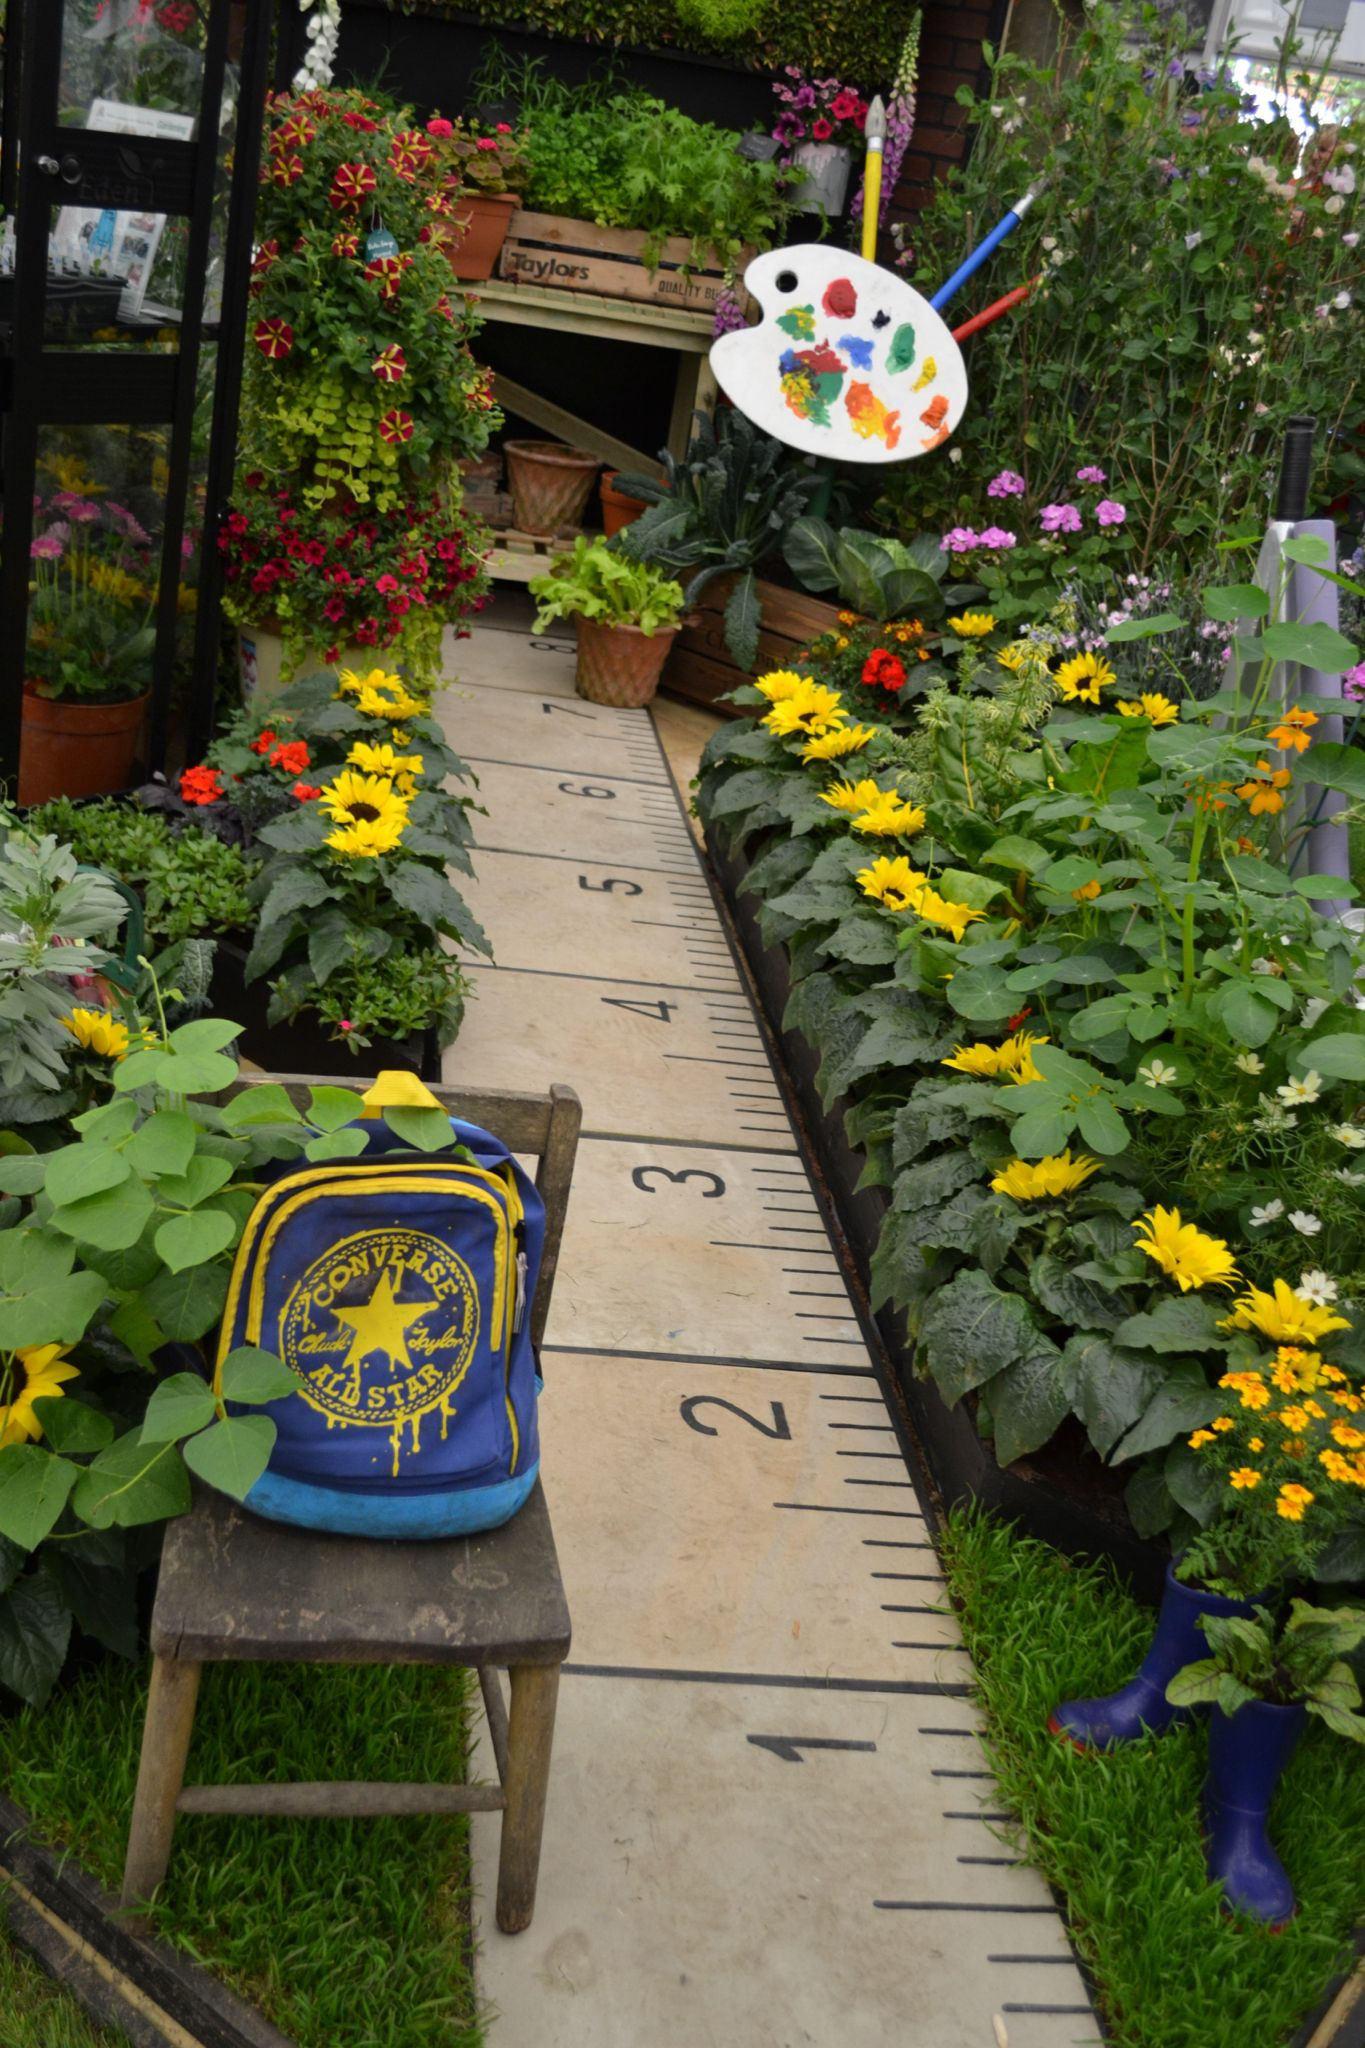 Ruler footpath lined with sunflowers ideal for kids garden ...